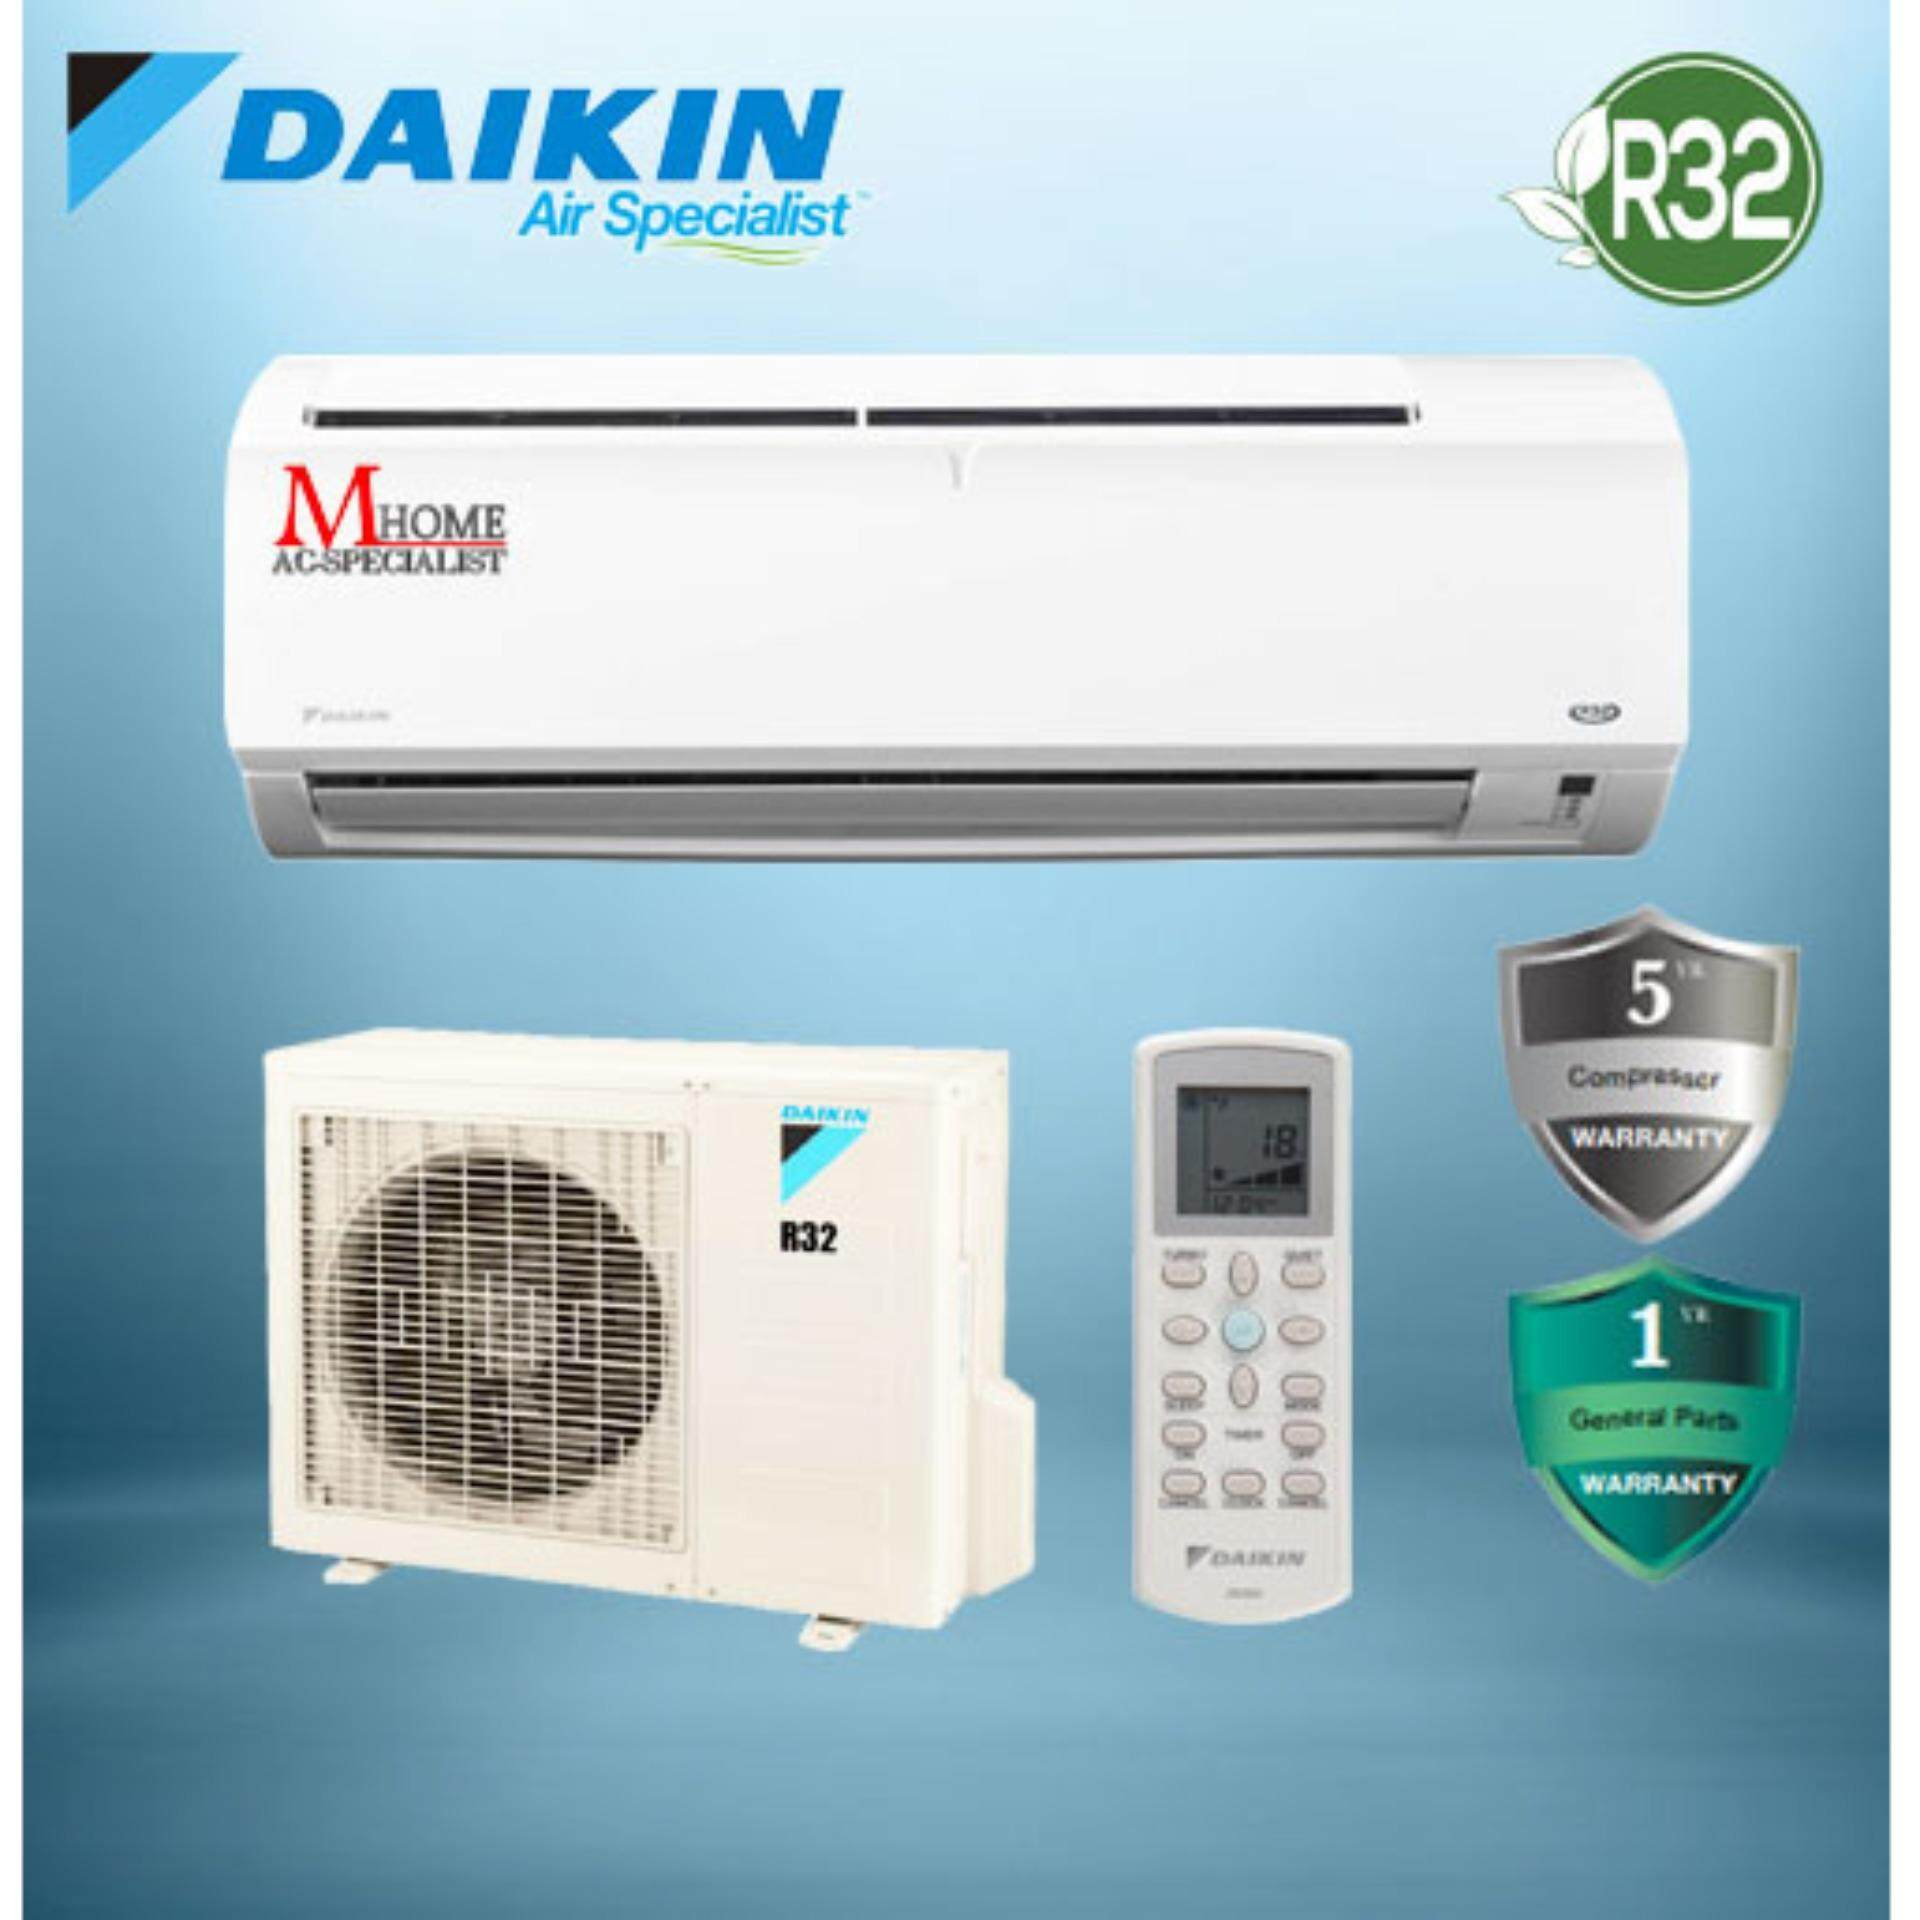 Daikin Air Conditioner Specifications Malaysia Sante Blog